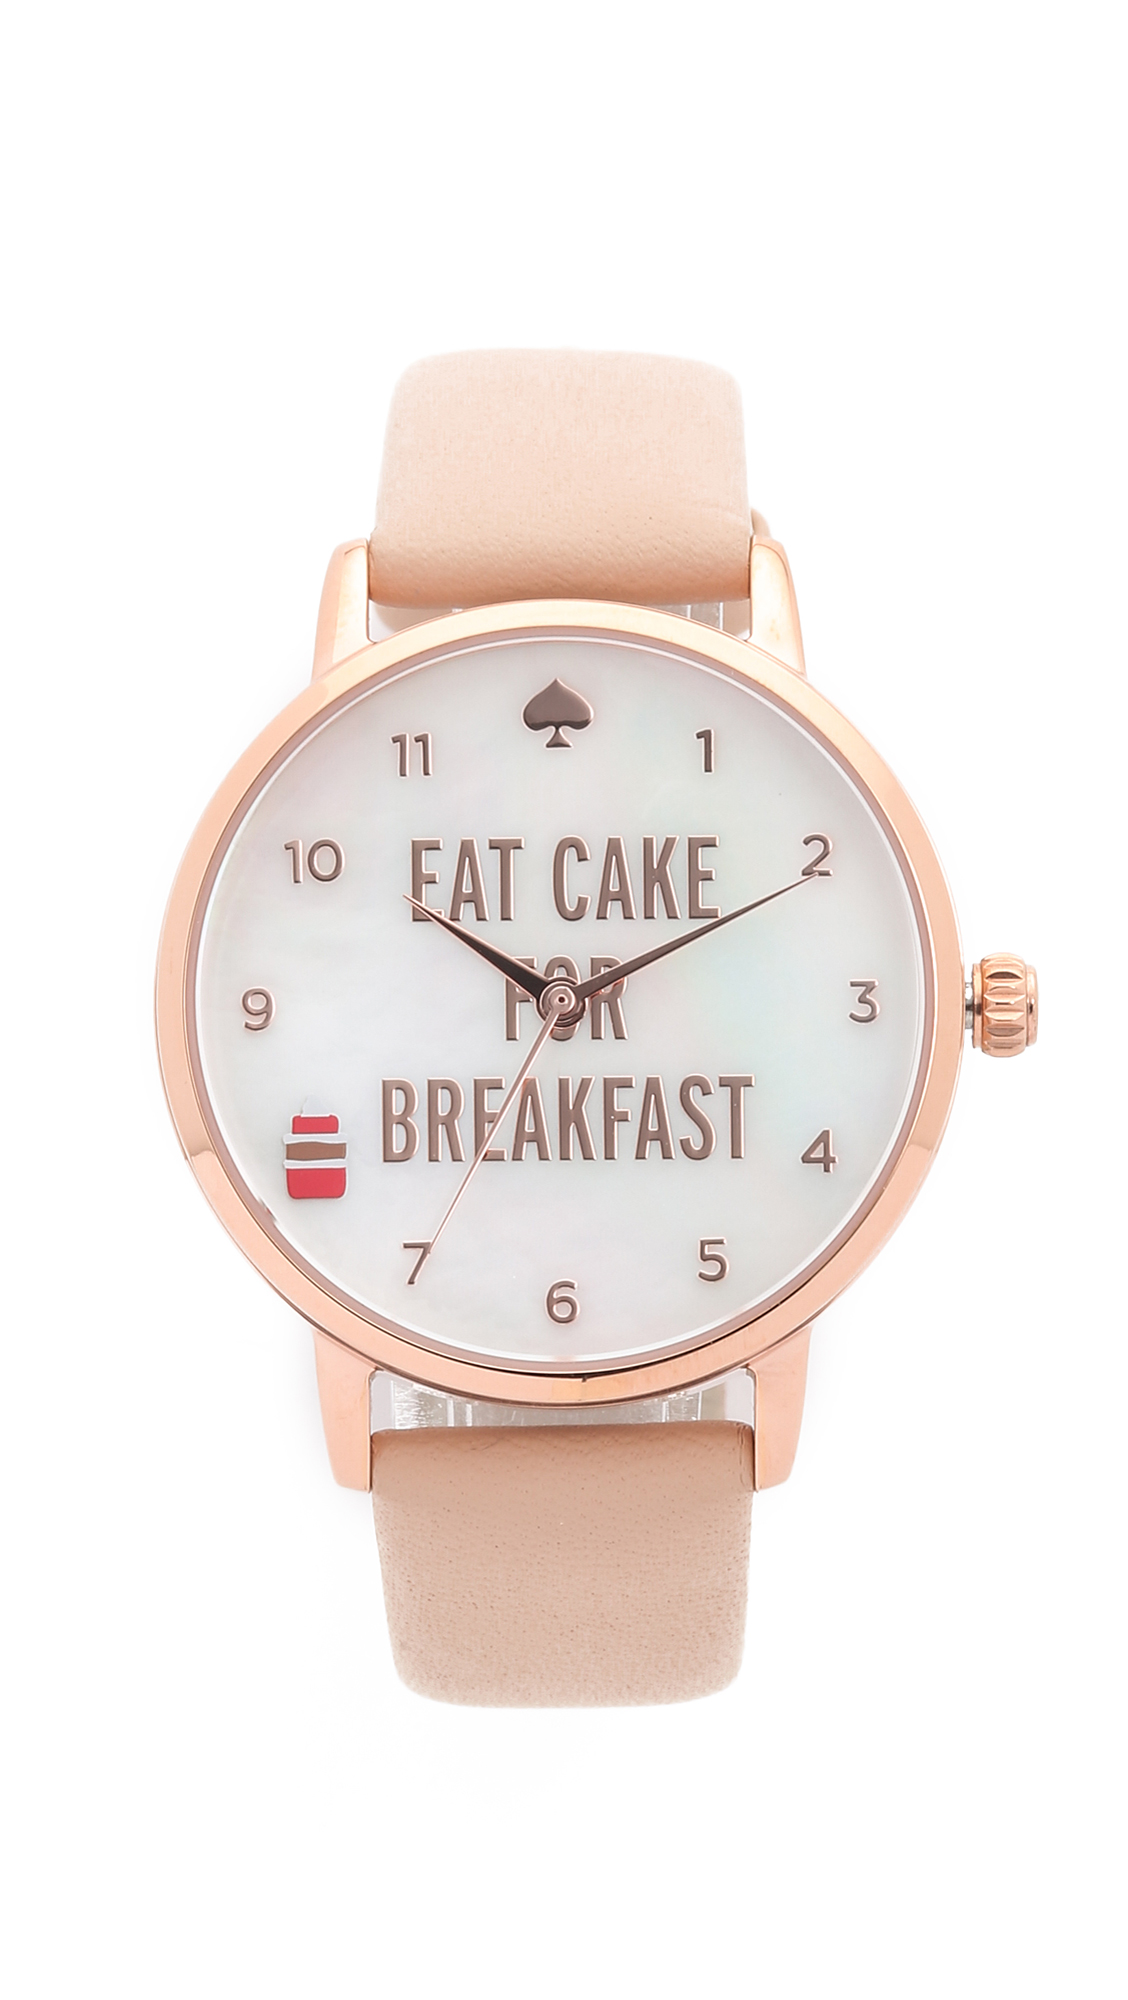 Kate Spade New York Metro Eat Cake For Breakfest Watch - Vachetta/Rose Gold at Shopbop